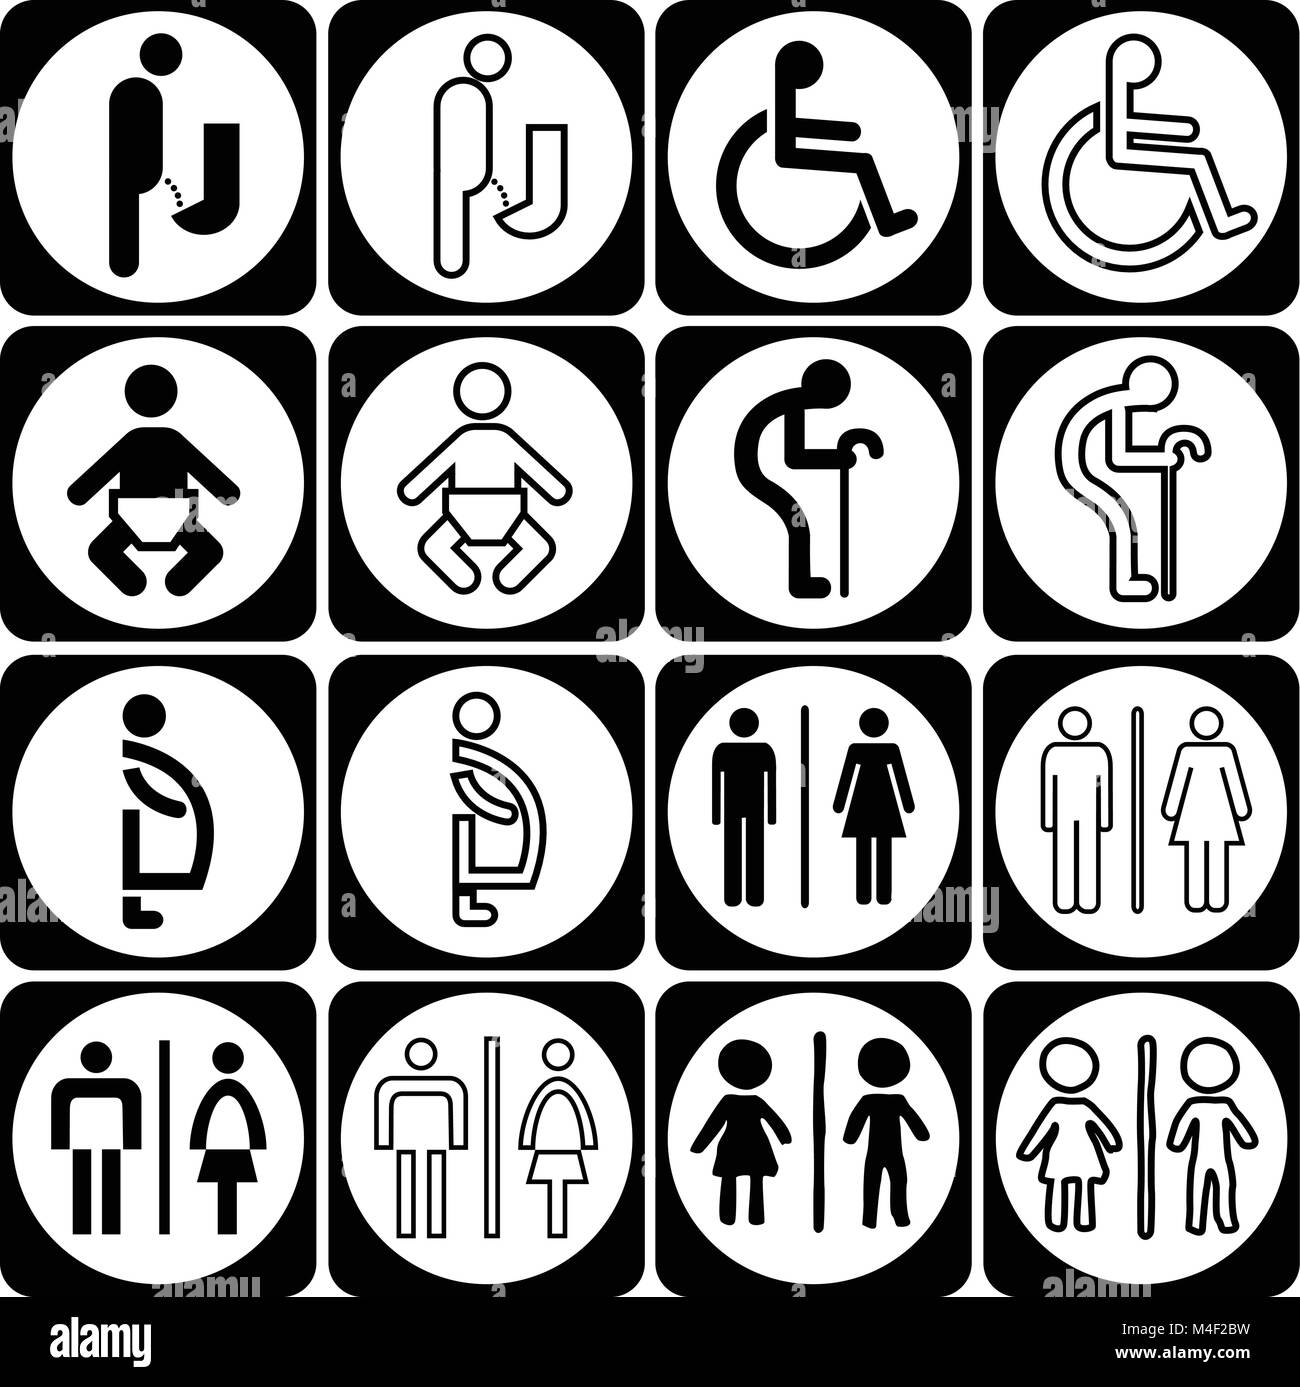 Modern Style Of Toilet Sign With Baby Men Women Pregnant Aged Handicapped In Art Design Vector Set